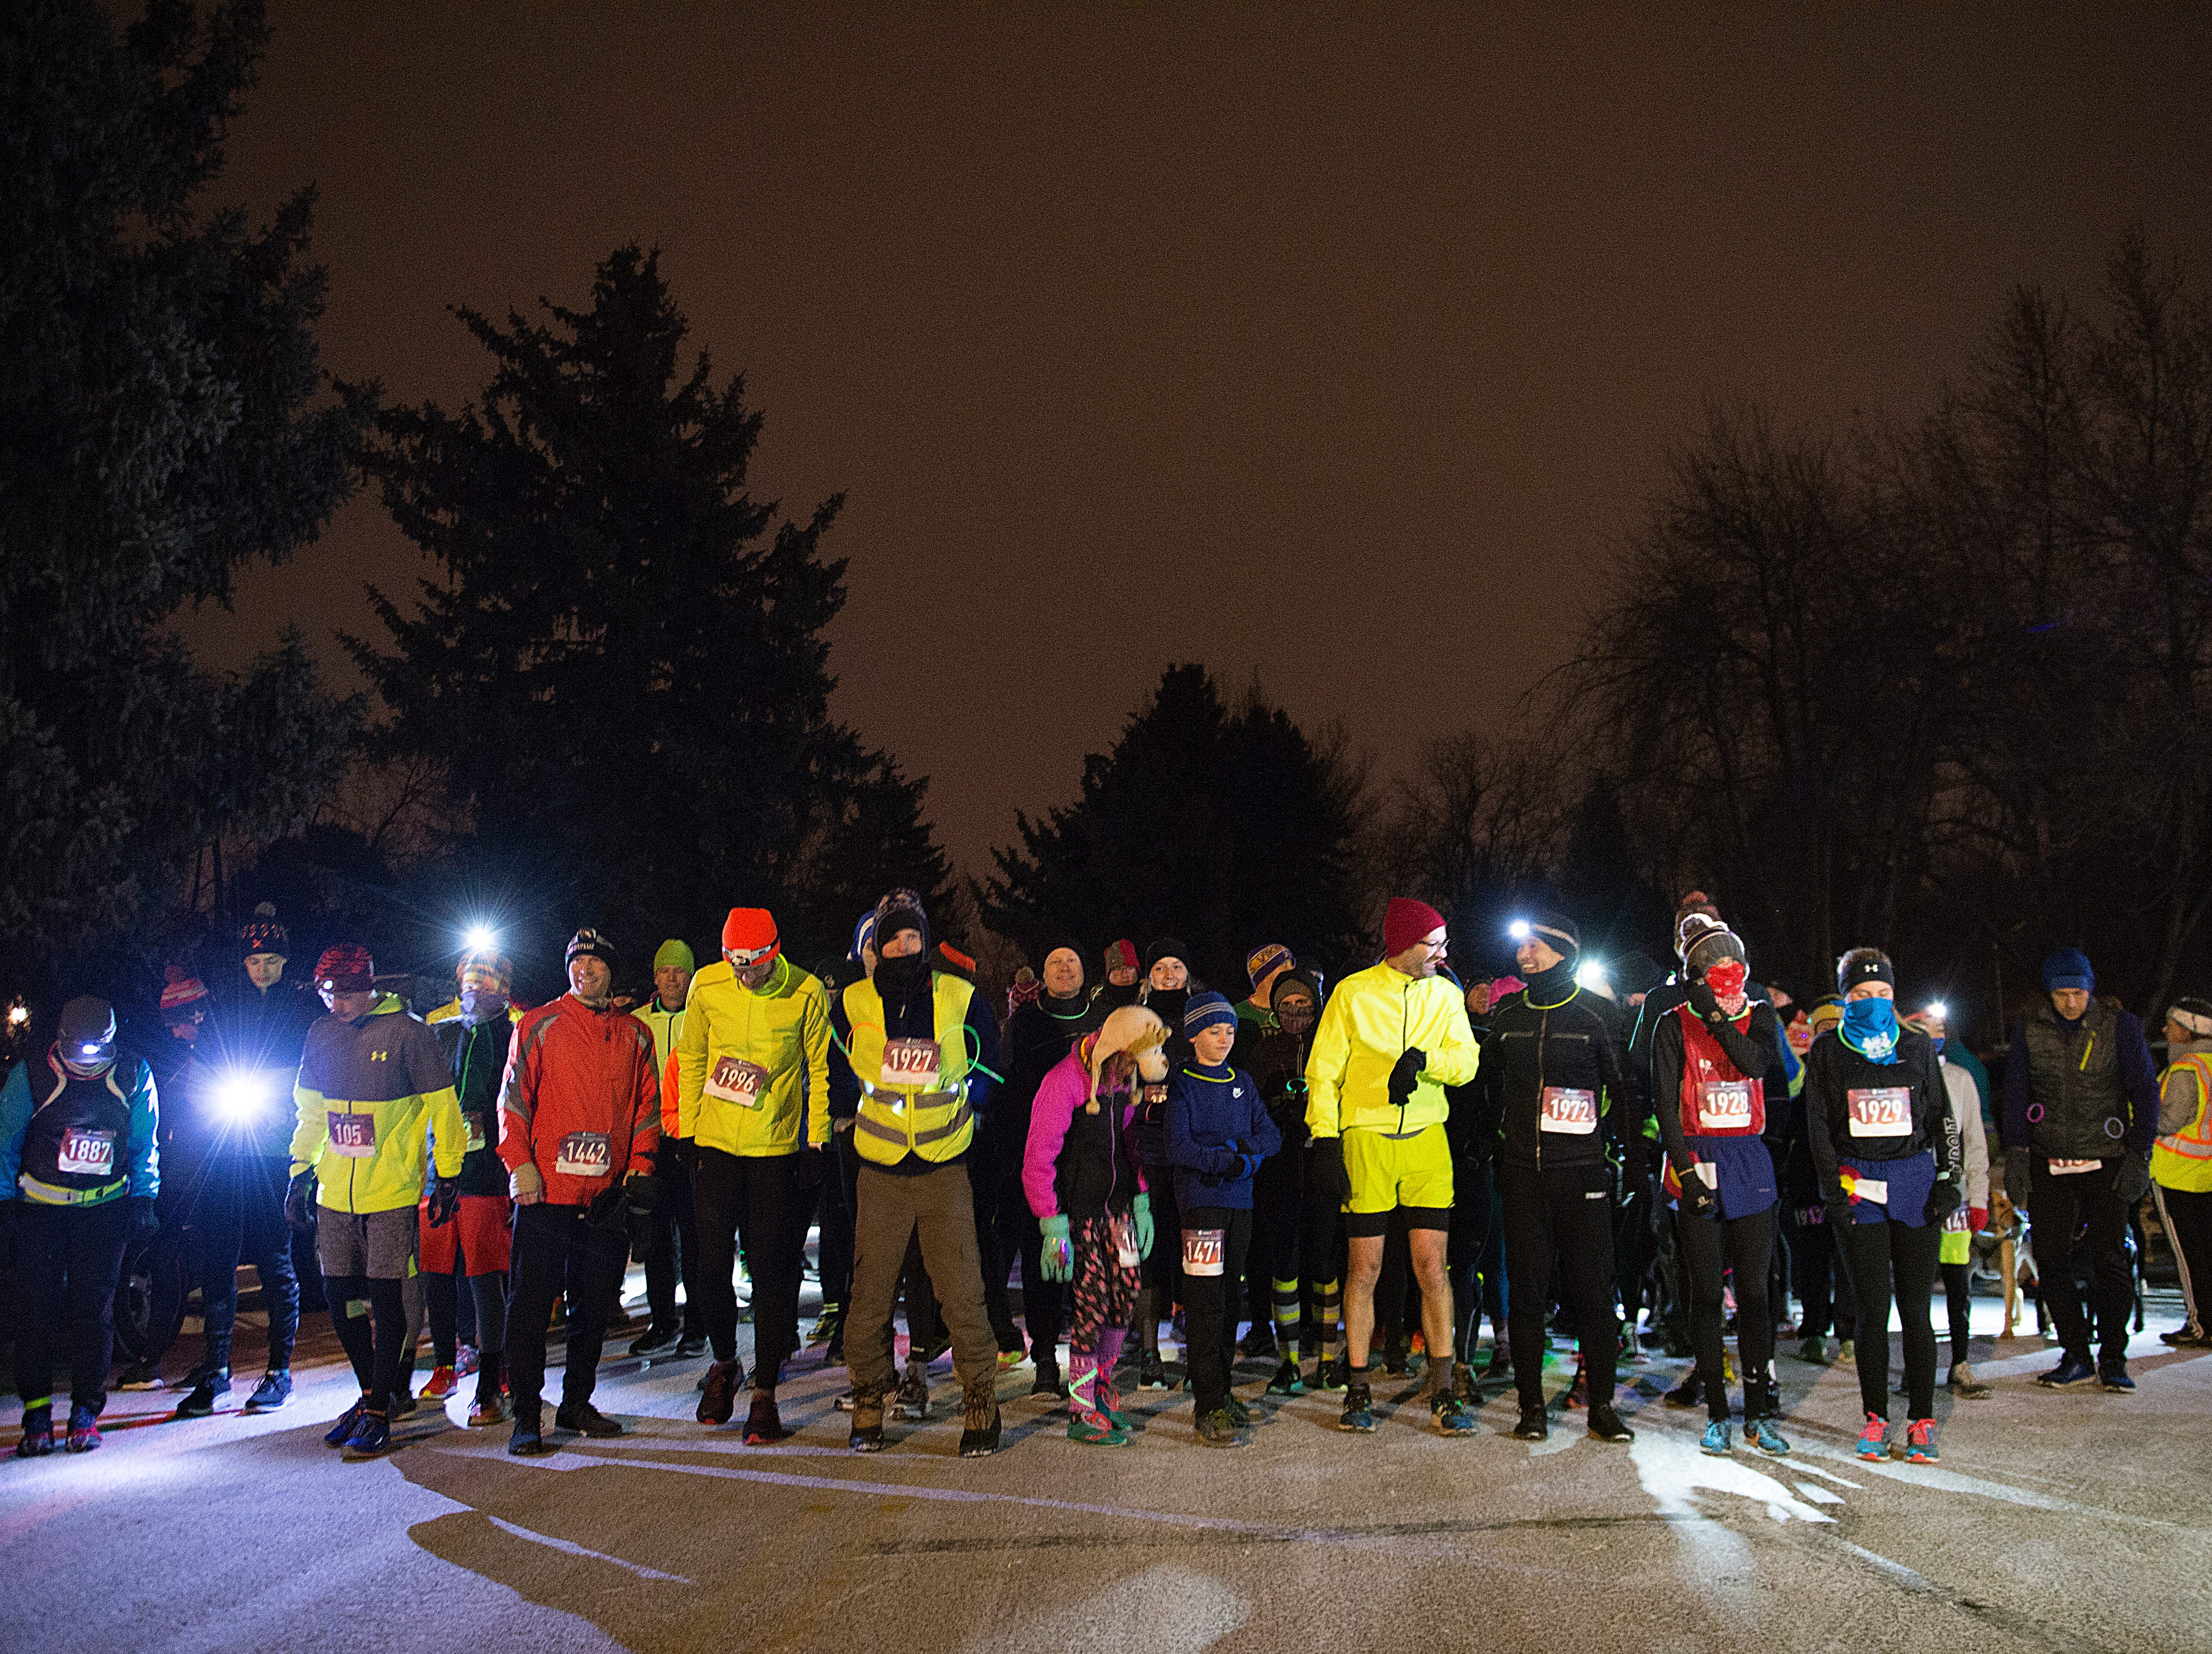 Runners line up on the snowy streets before beginning the Resolution Run 5K at Our Saviour's Lutheran Church on December 31, 2018. People braved single-digit temperatures to ring in the new year with the run.